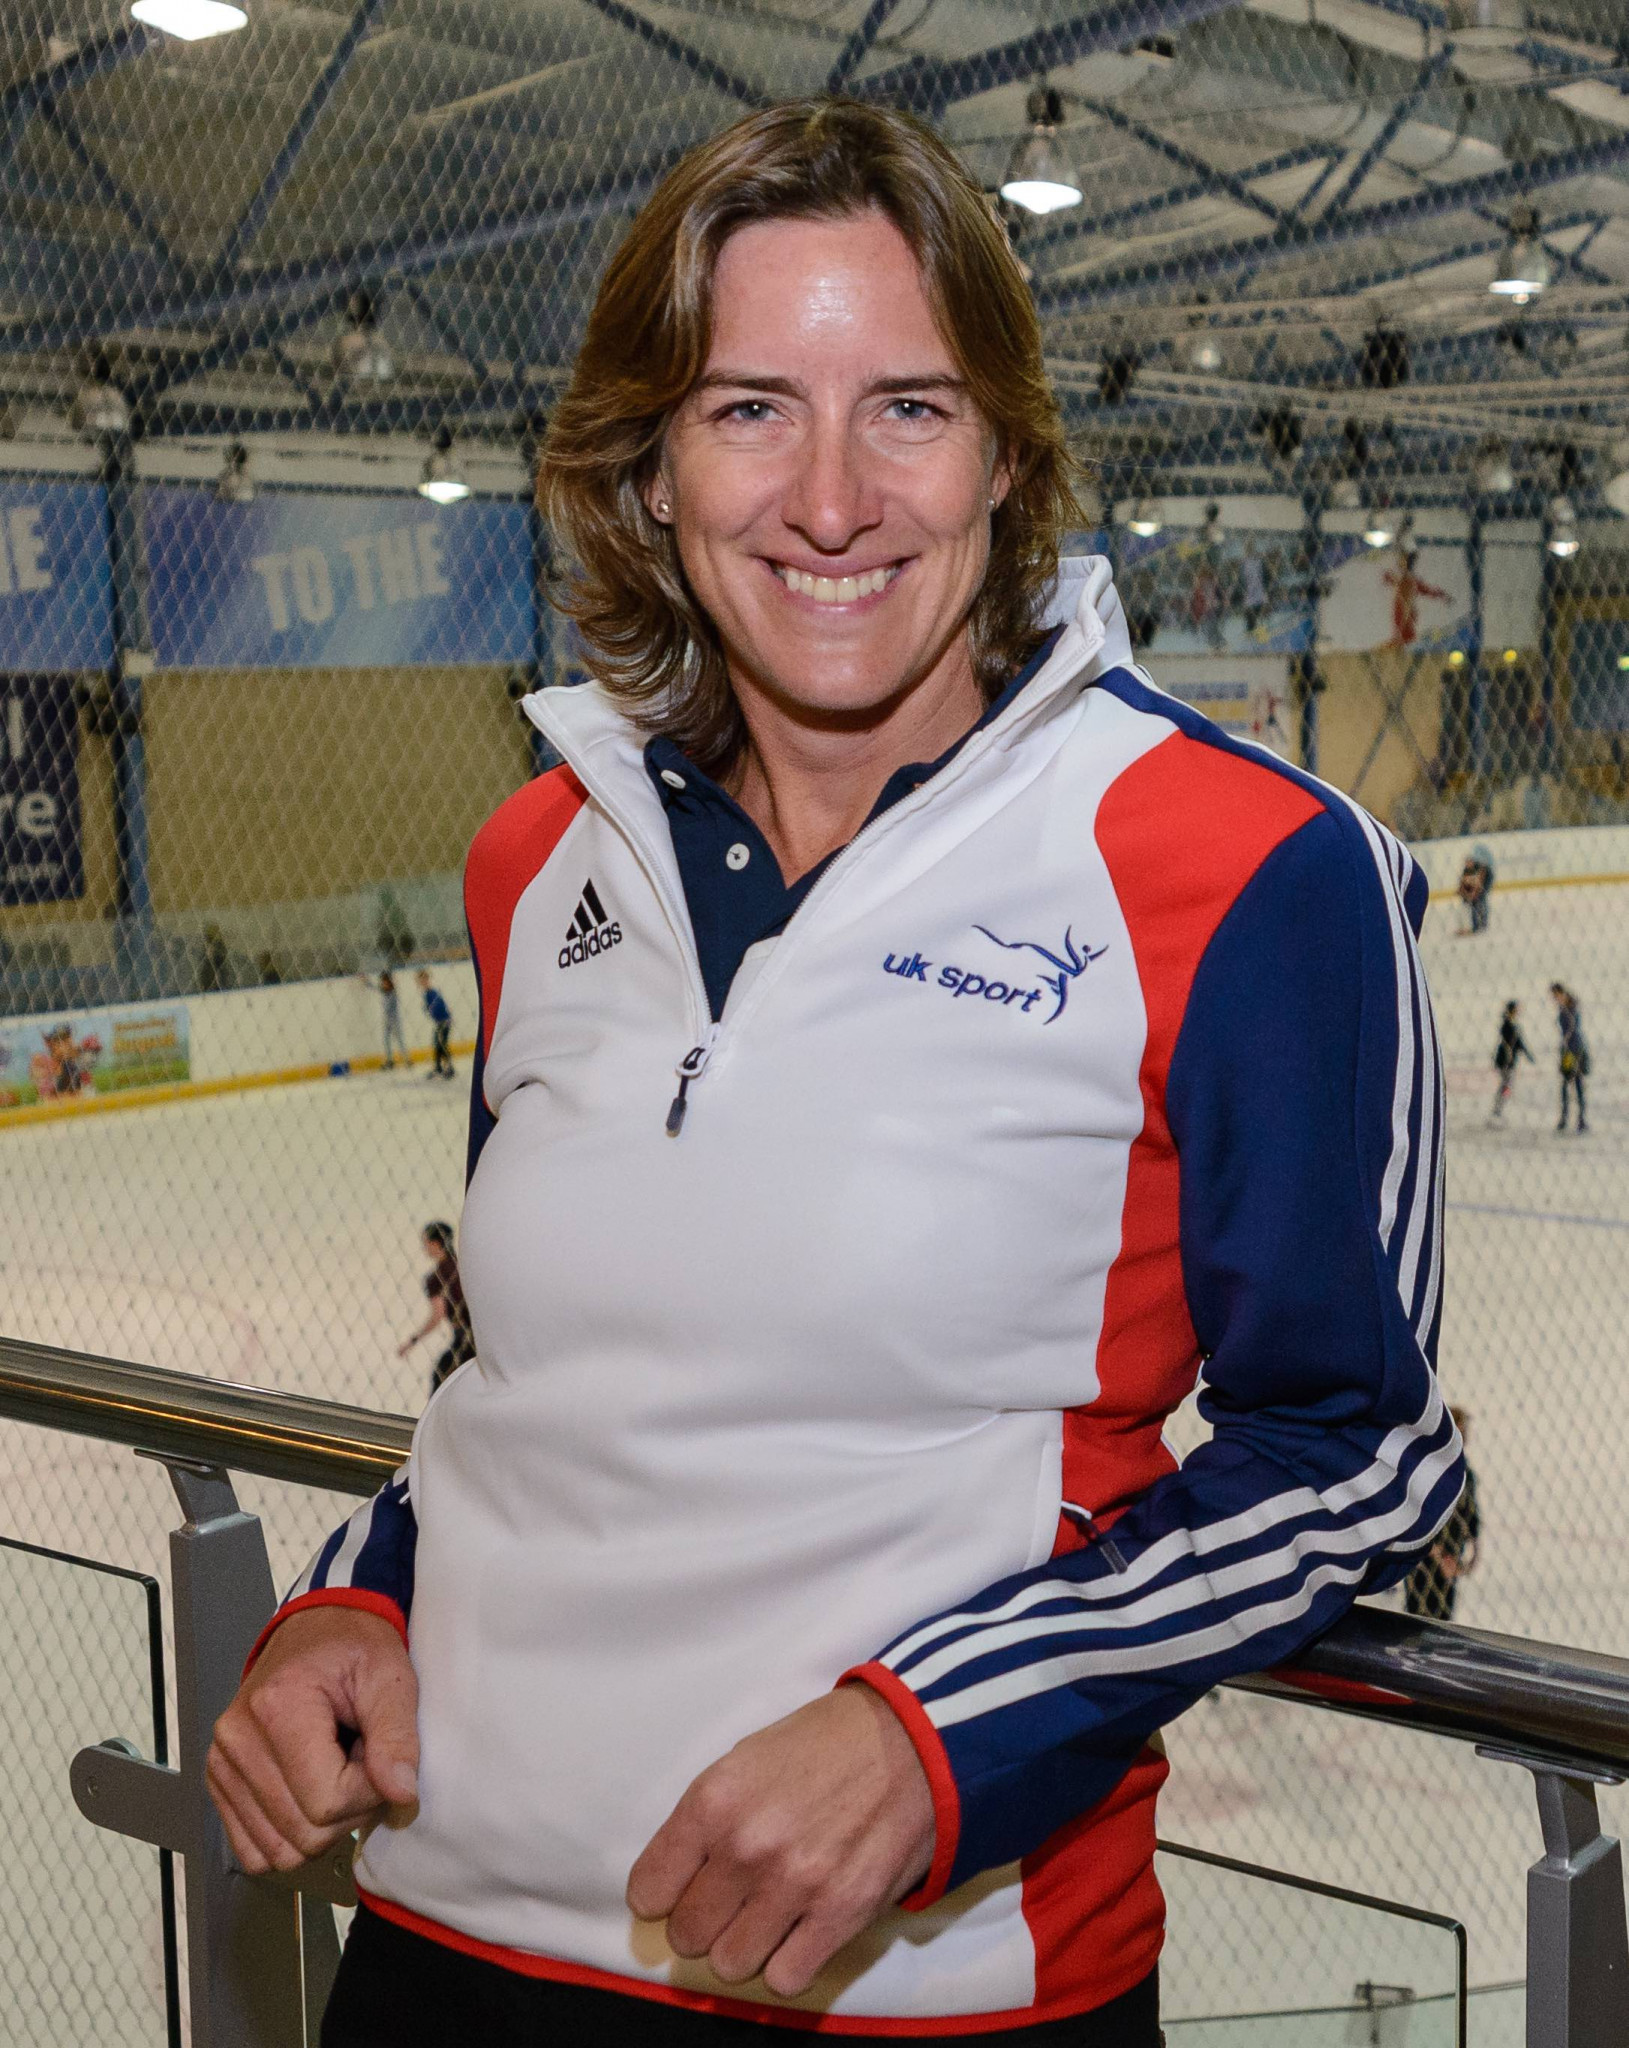 UK Sport chair Dame Katherine Grainger has met with British Ski and Snowboard to assess progress ©UK Sport